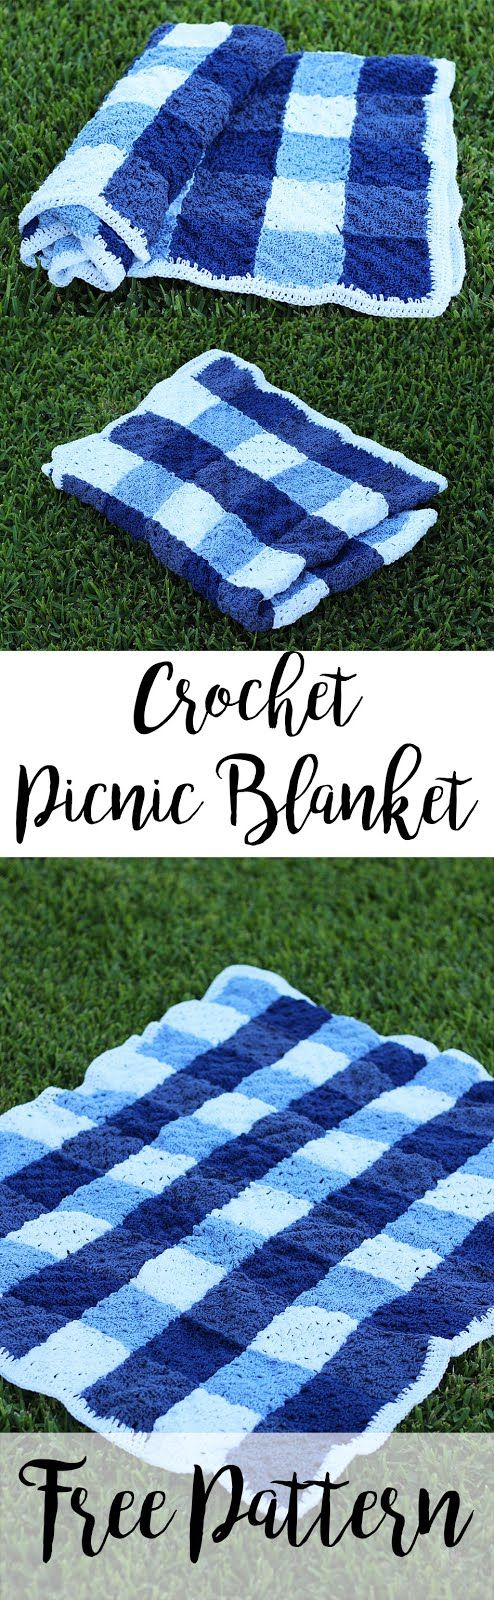 Crochet Gingham Picnic Blanket | Made of durable cotton! | Free Pattern: